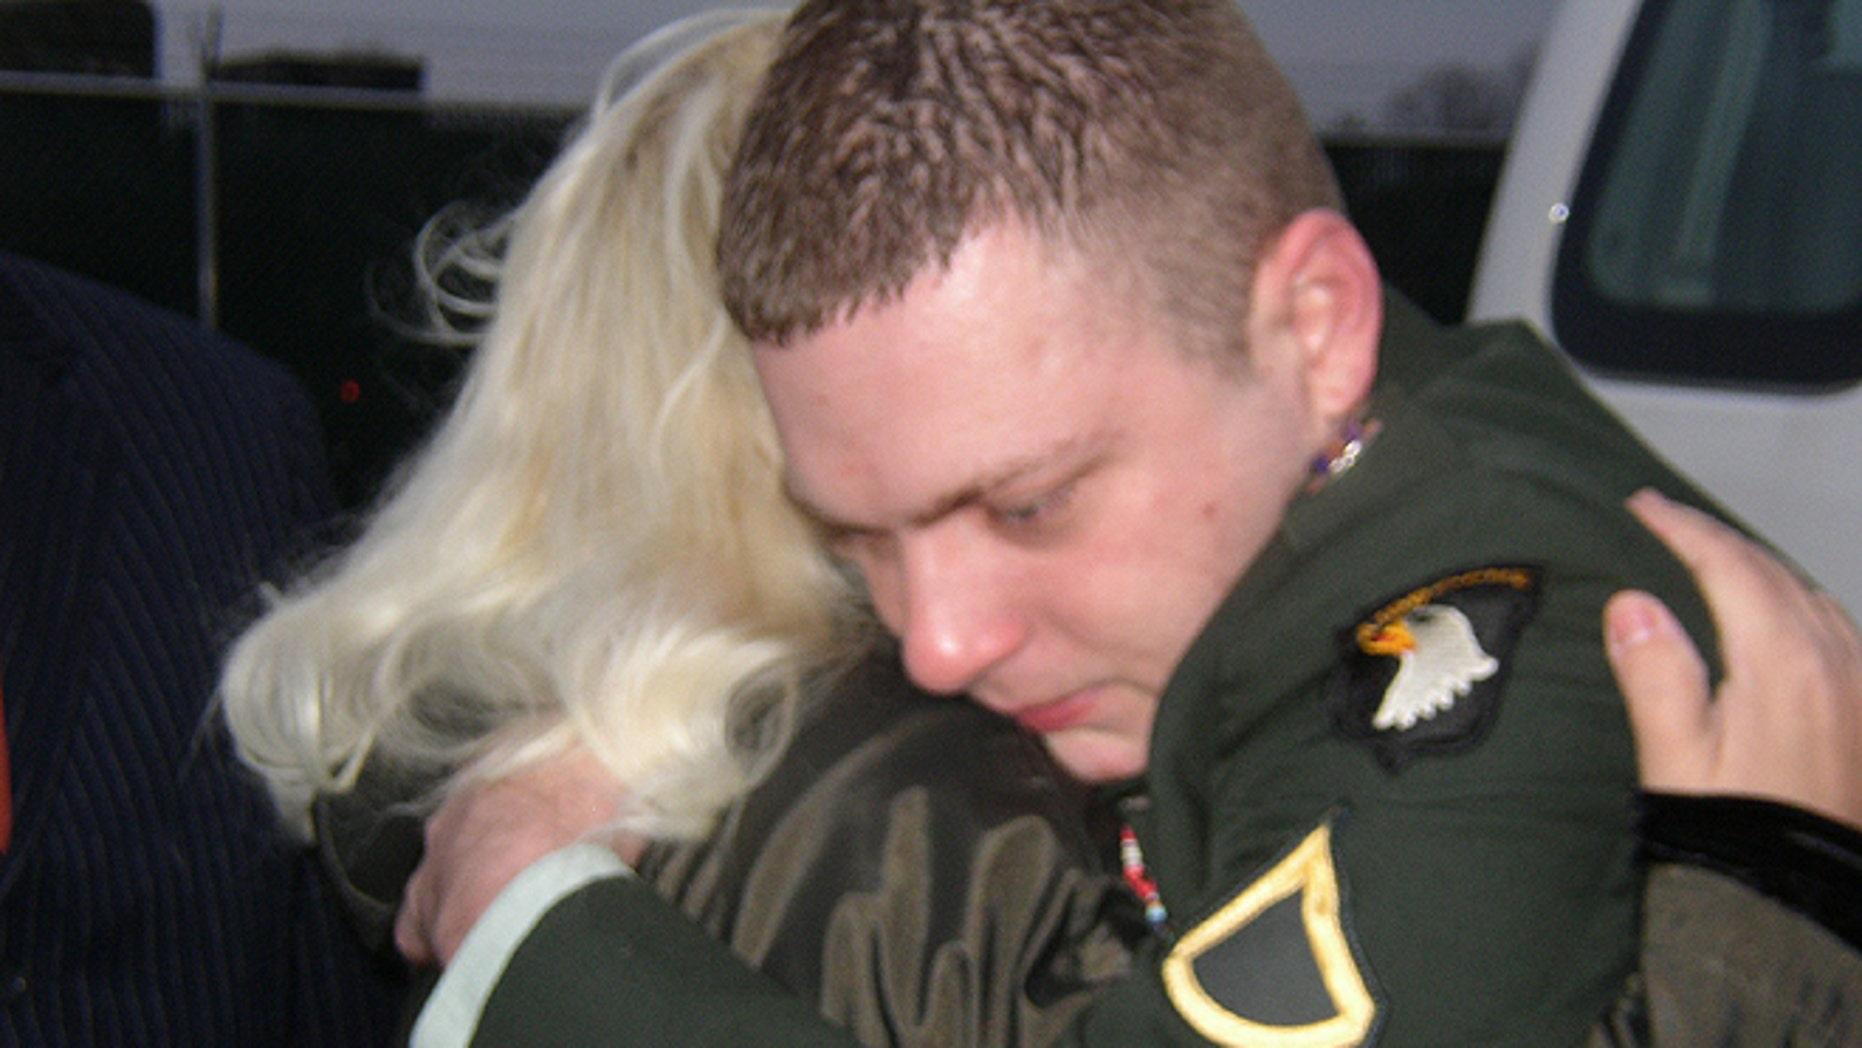 Corey Clagett, seen here hugging his mother before leaving to begin his prison sentence in 2007, was recently released and is petitioning for a pardon so he can re-enlist.